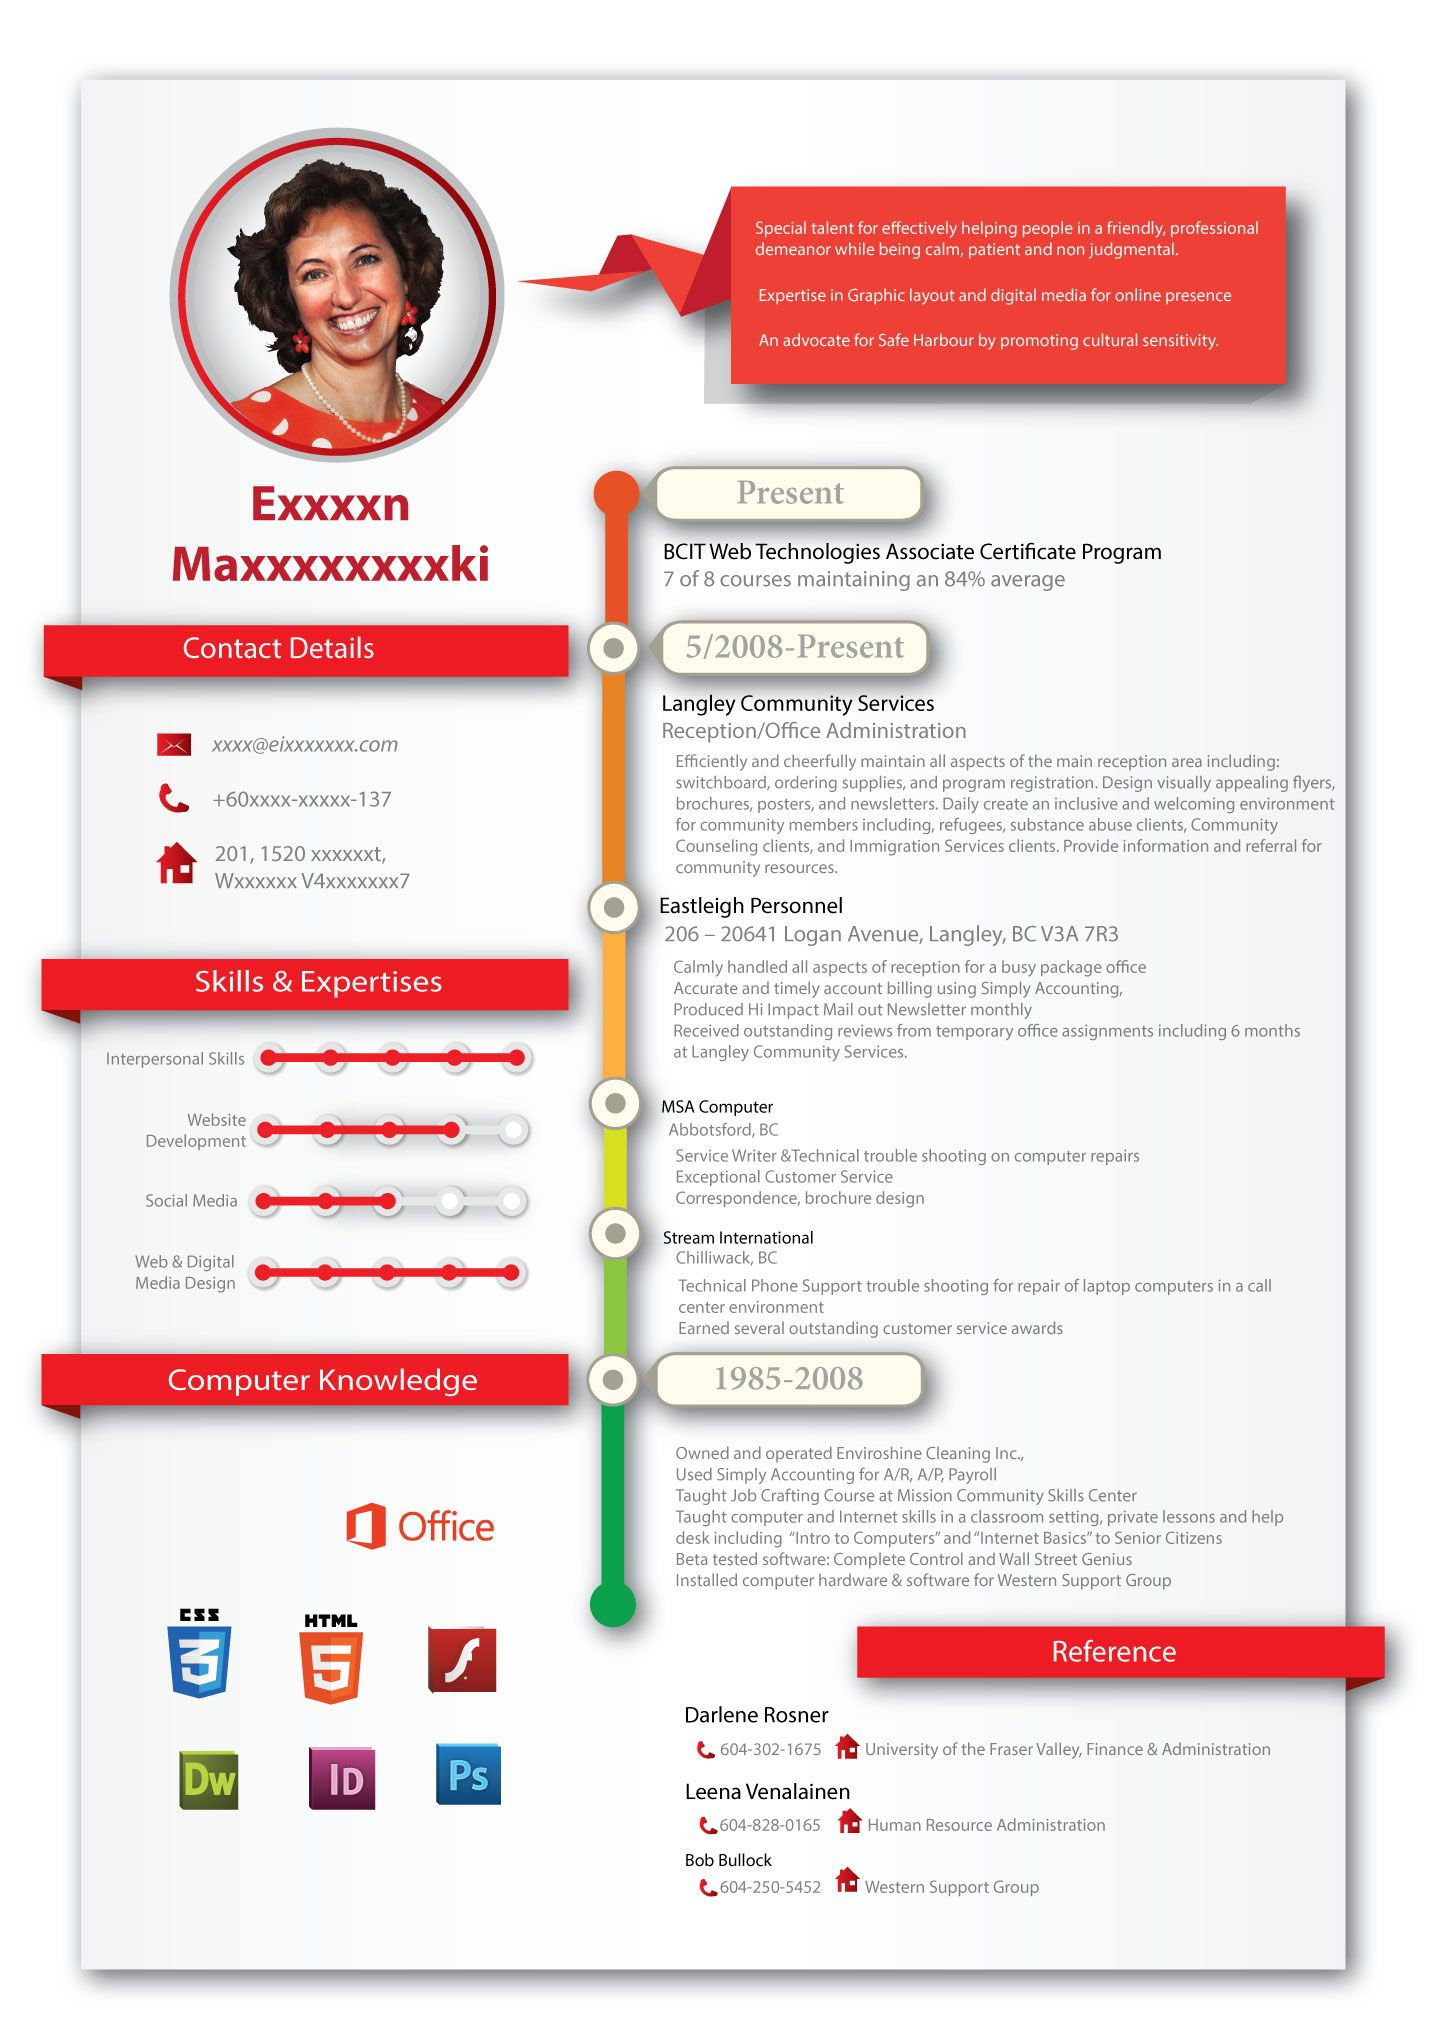 Infographic Resume Creative Professional Resume Design For Creative People